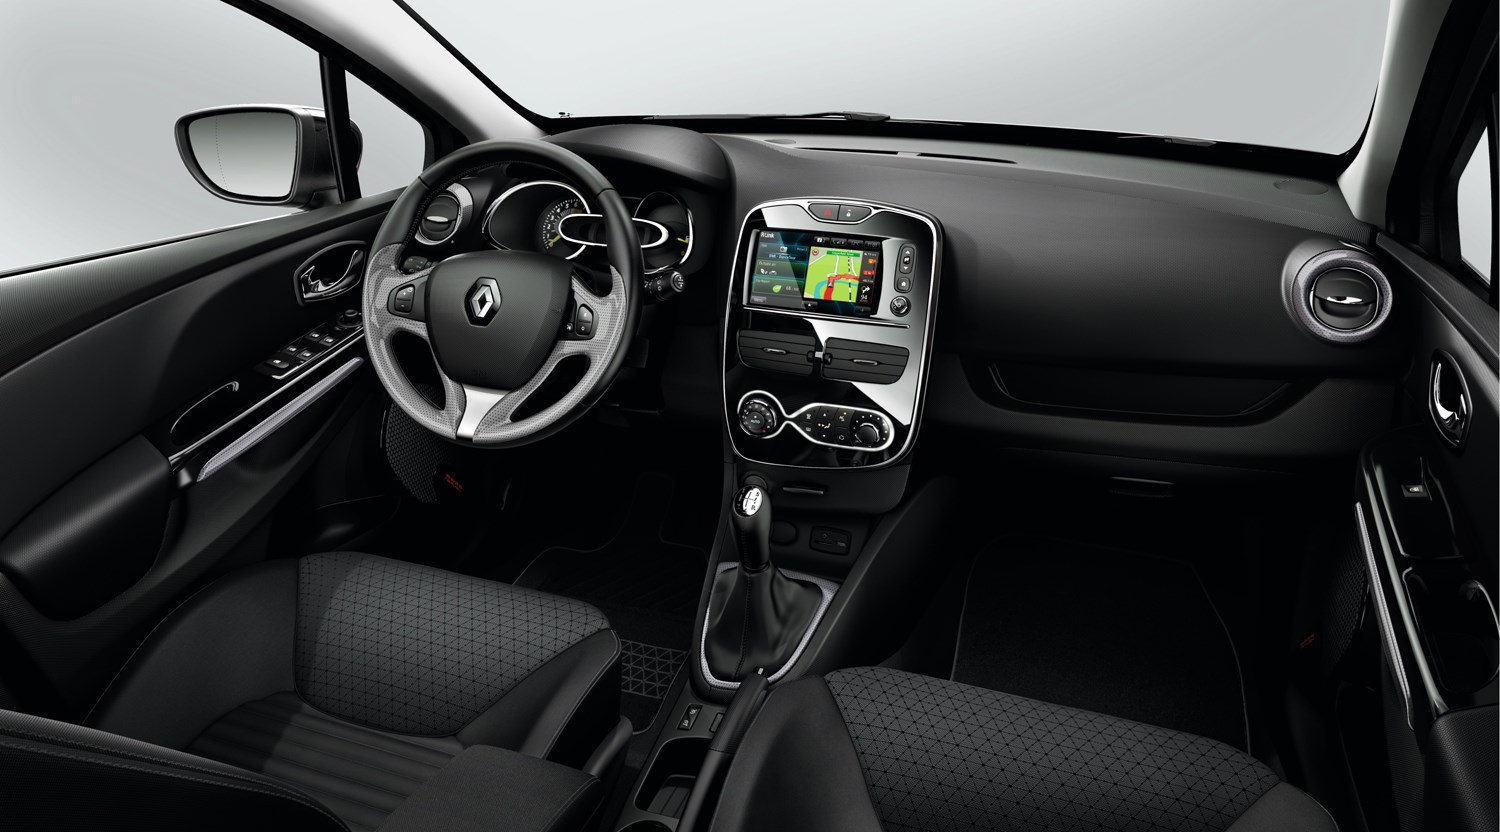 Renault Clio Review Features Practicality And Safety Parkers